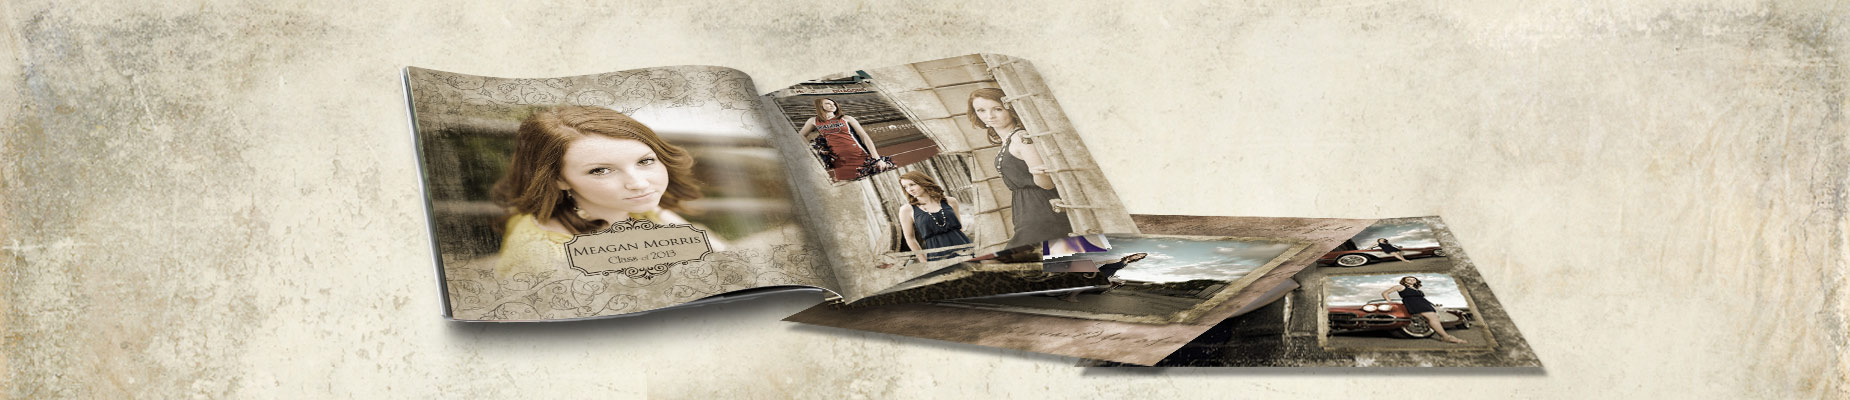 photo templates book